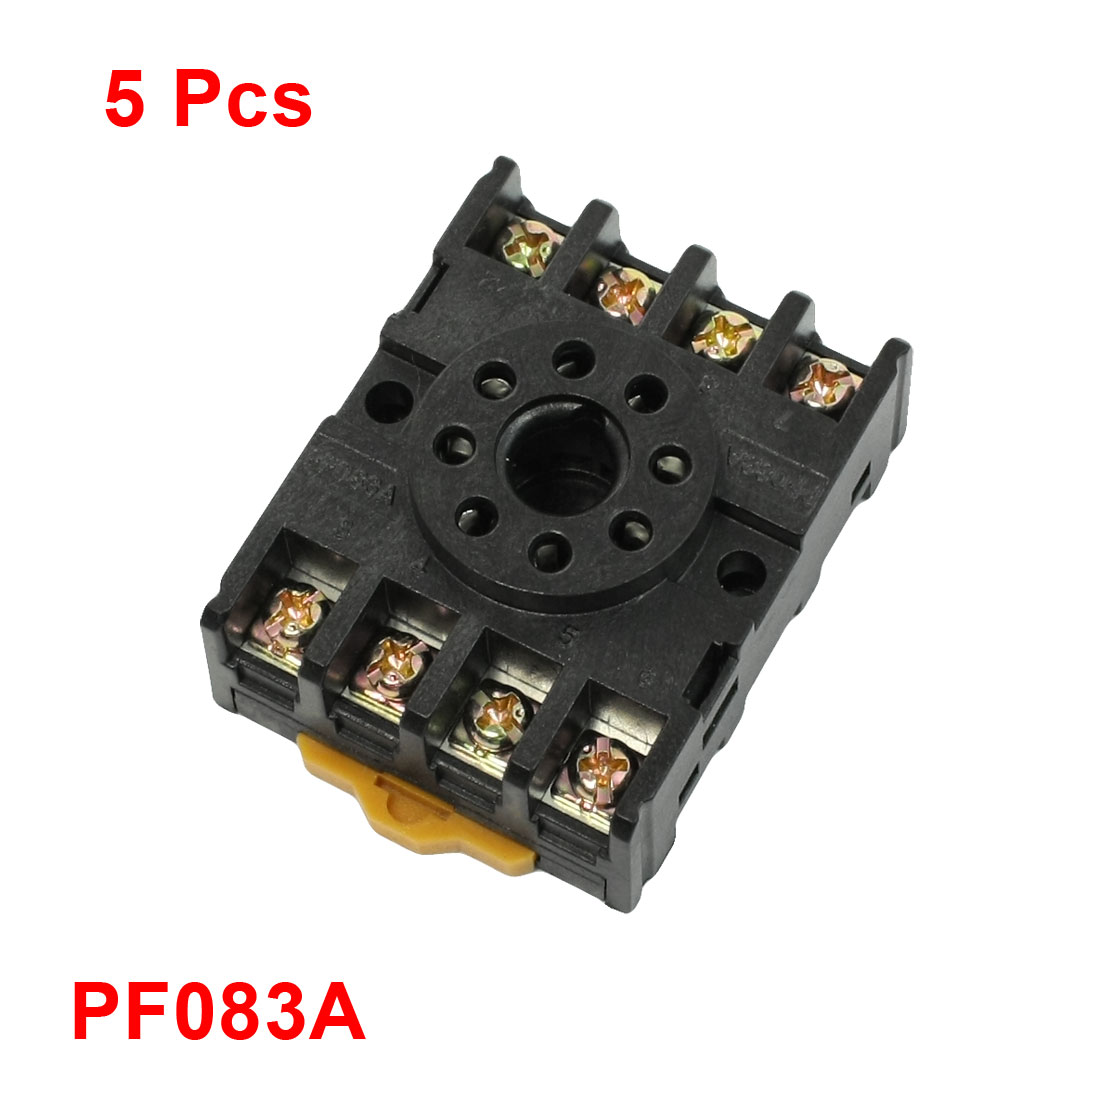 5 Pcs PF083A 8 Pins Time Relay Base Socket for DH48S MK2P